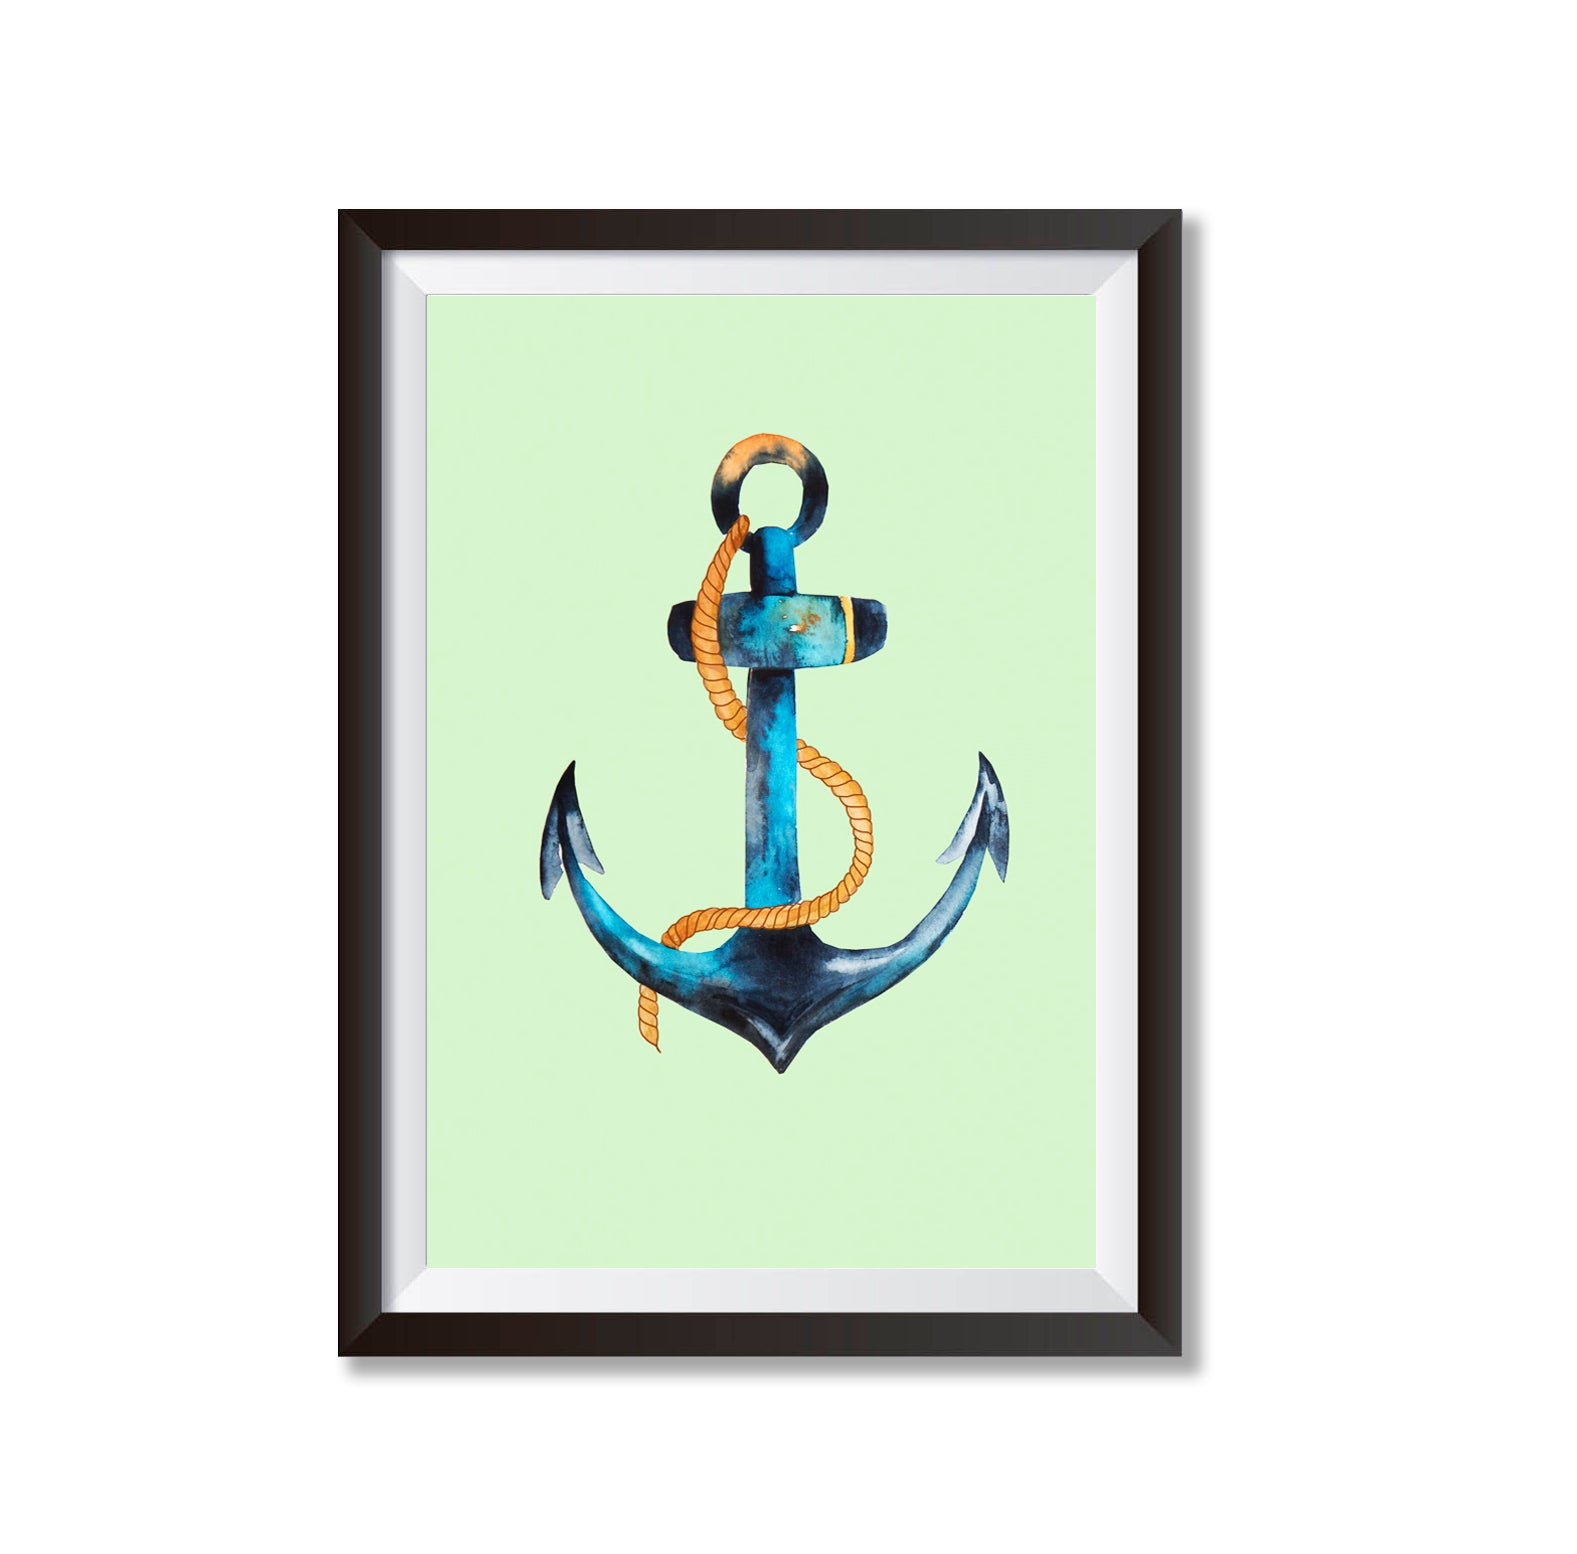 Green Anchor Illustration Poster Print-Print-Mode Prints